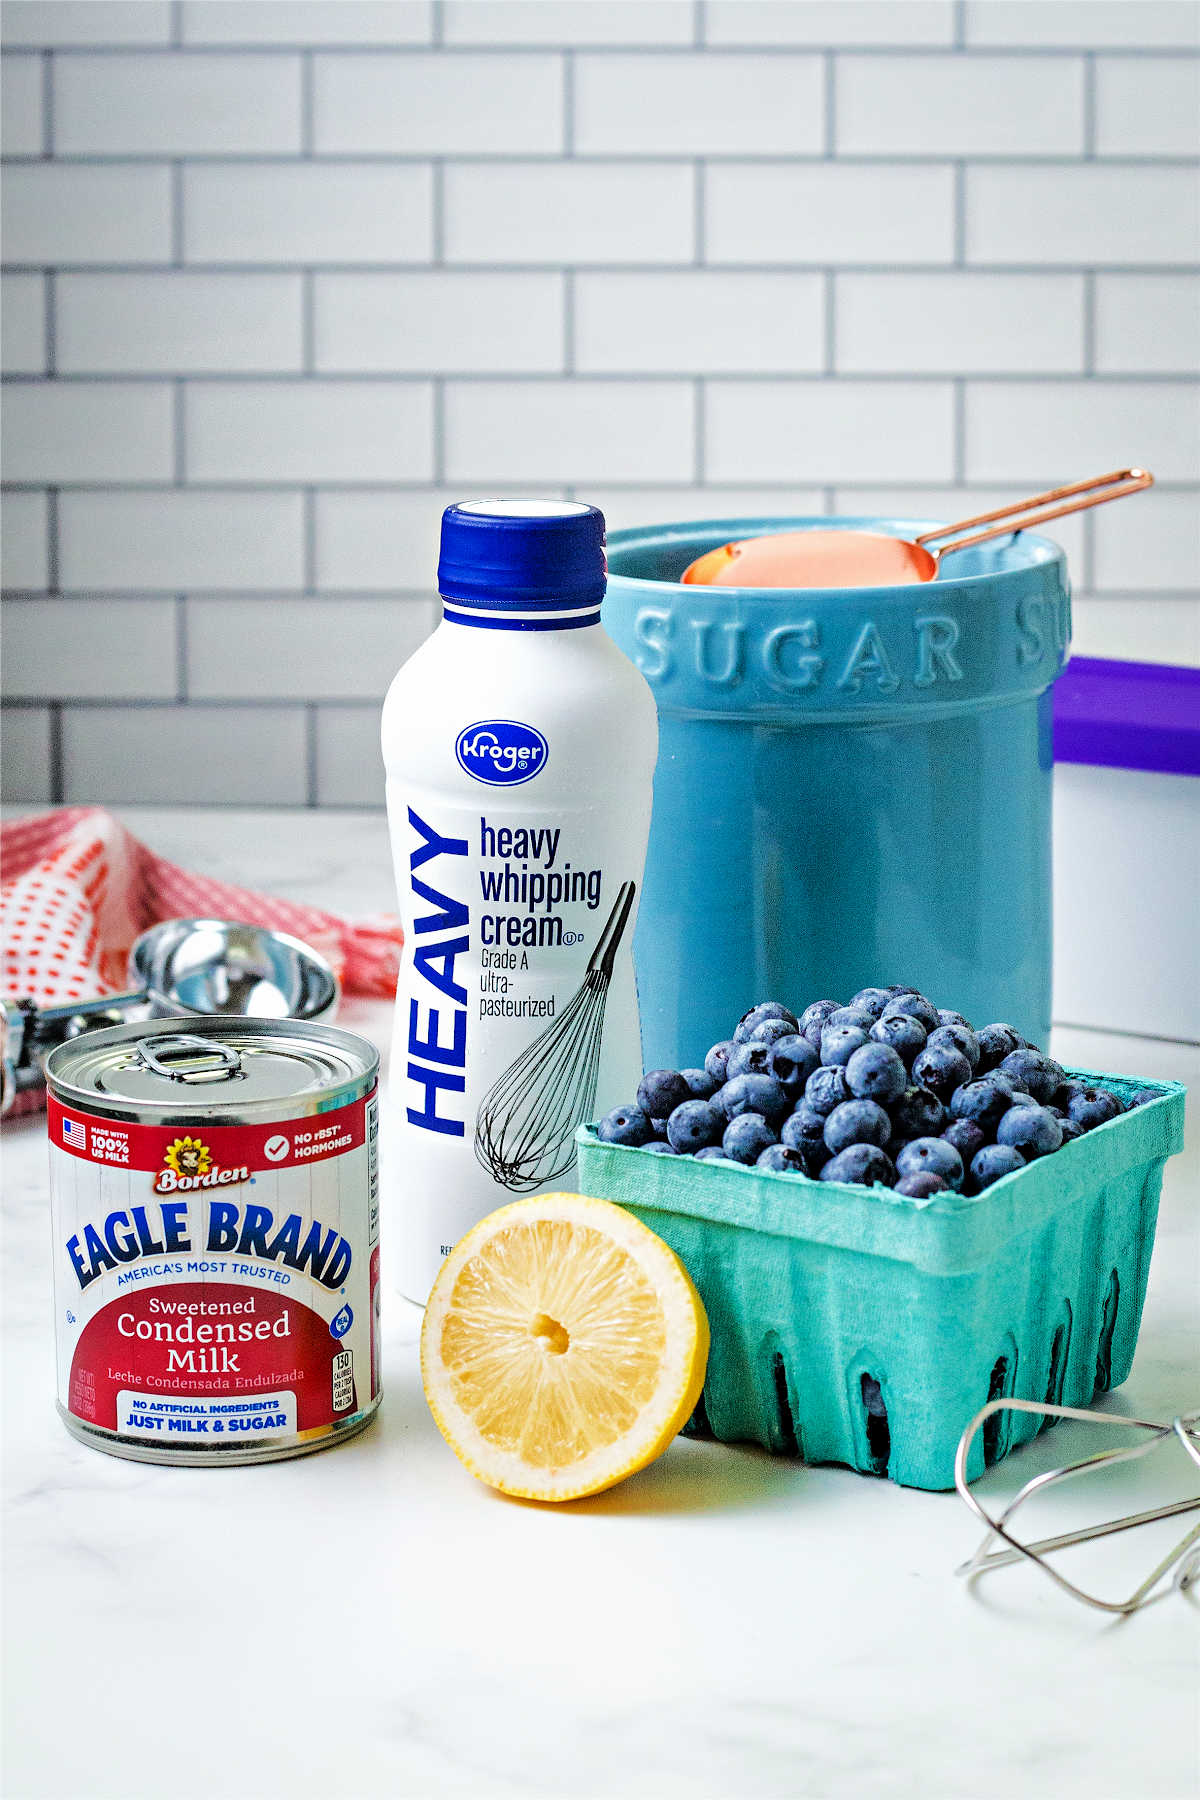 ingredients for blueberry ice cream on a counter: sweetened condensed milk, whipping cream, sugar, blueberries, and a lemon.